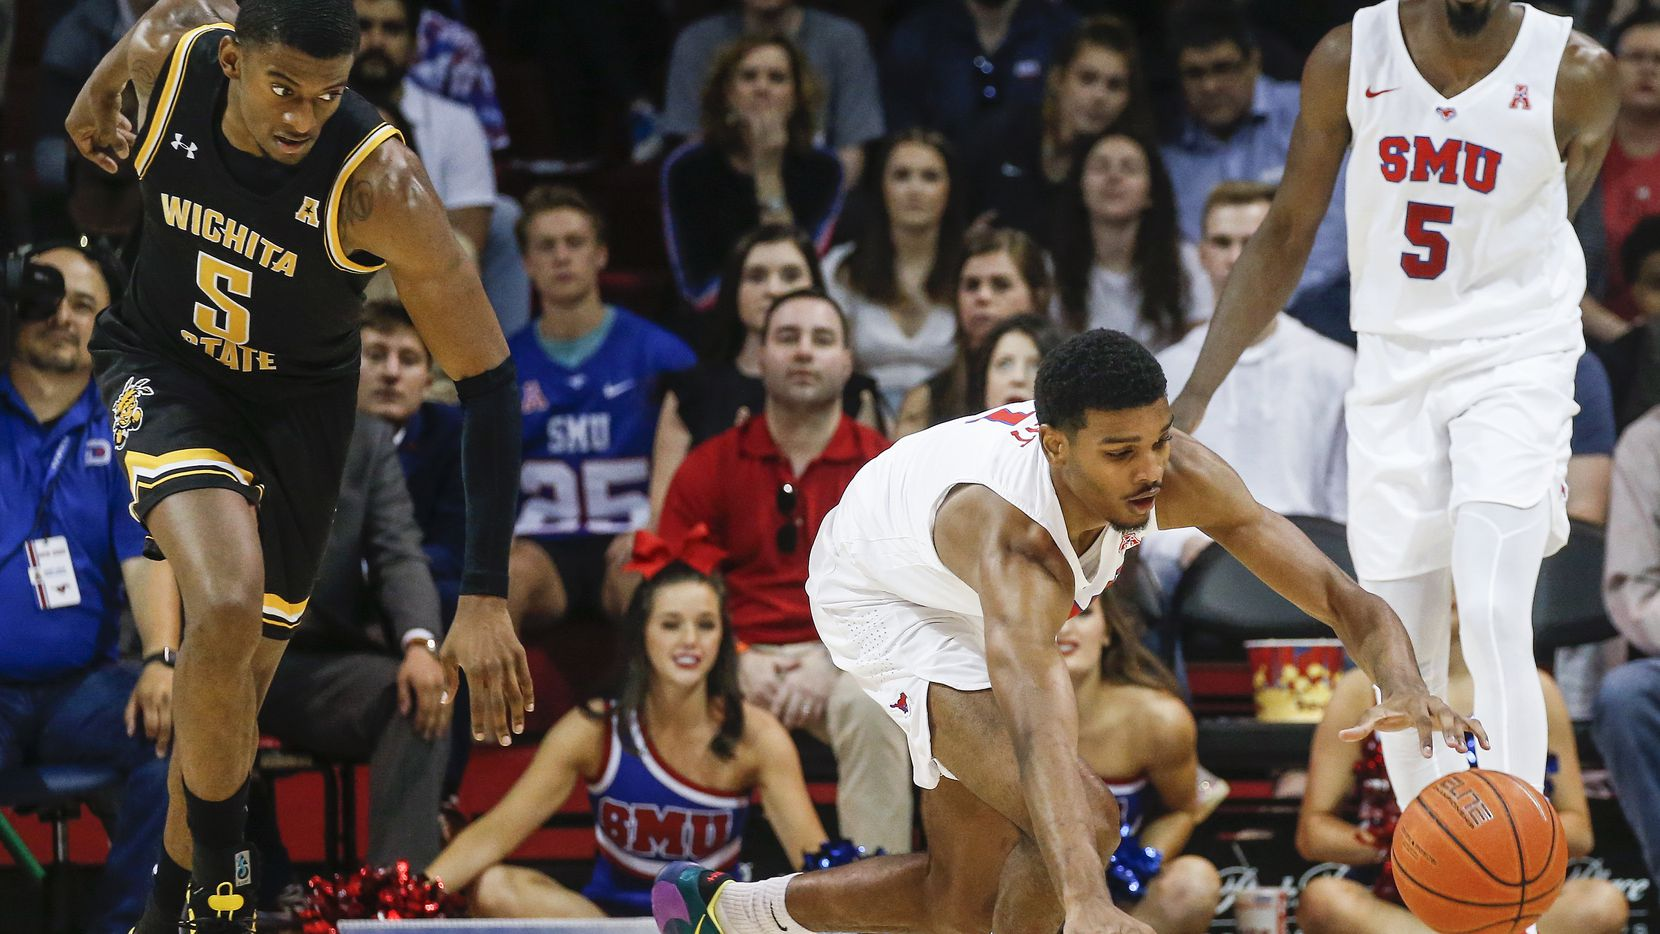 Southern Methodist Mustangs forward Feron Hunt (1) reaches to recover a loose ball past Wichita State Shockers forward Trey Wade (5) during the first half of am NCAA men's basketball matchup between SMU and Wichita State on Sunday, March 1, 2020 at Moody Coliseum in University Park, Texas.